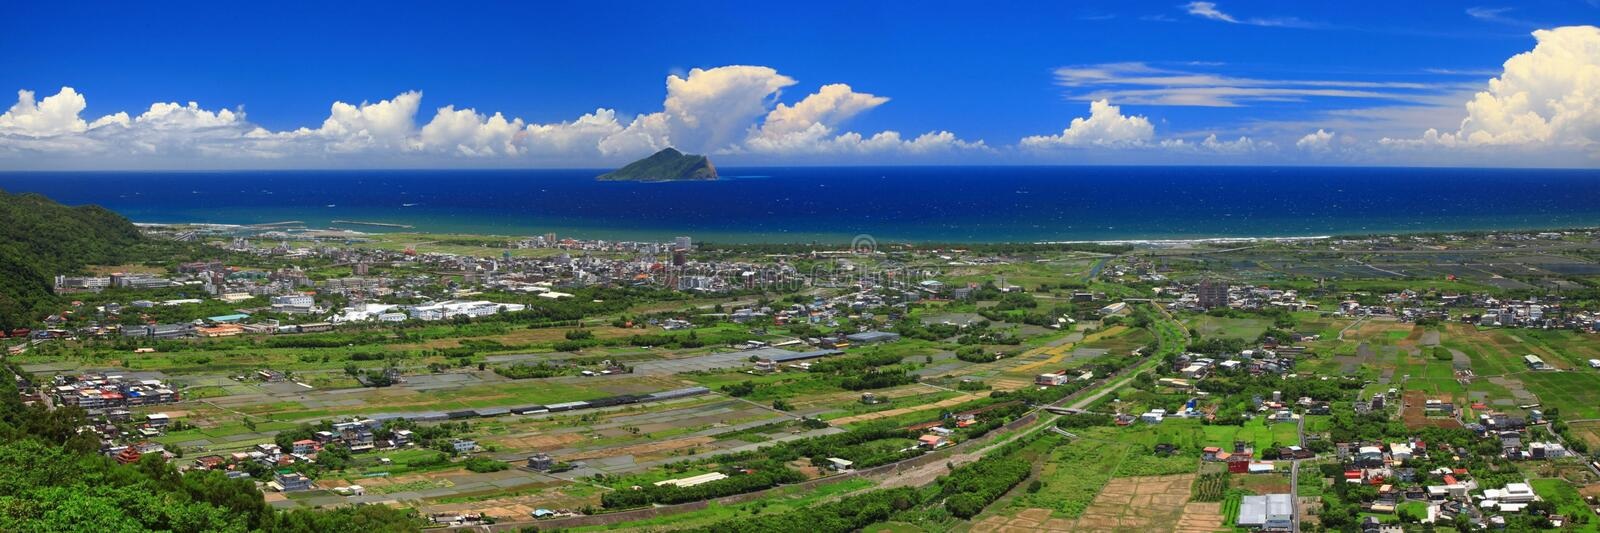 Download Panorama Image Of East Taiwan In Summer Stock Photo - Image: 26305064